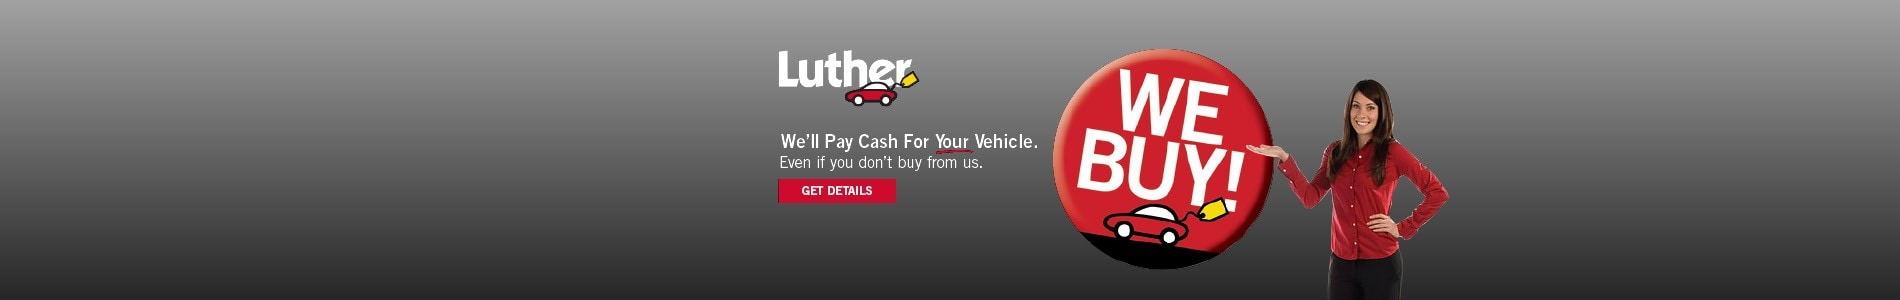 Luther Automotive |13,000 New and Pre-Owned Vehicles